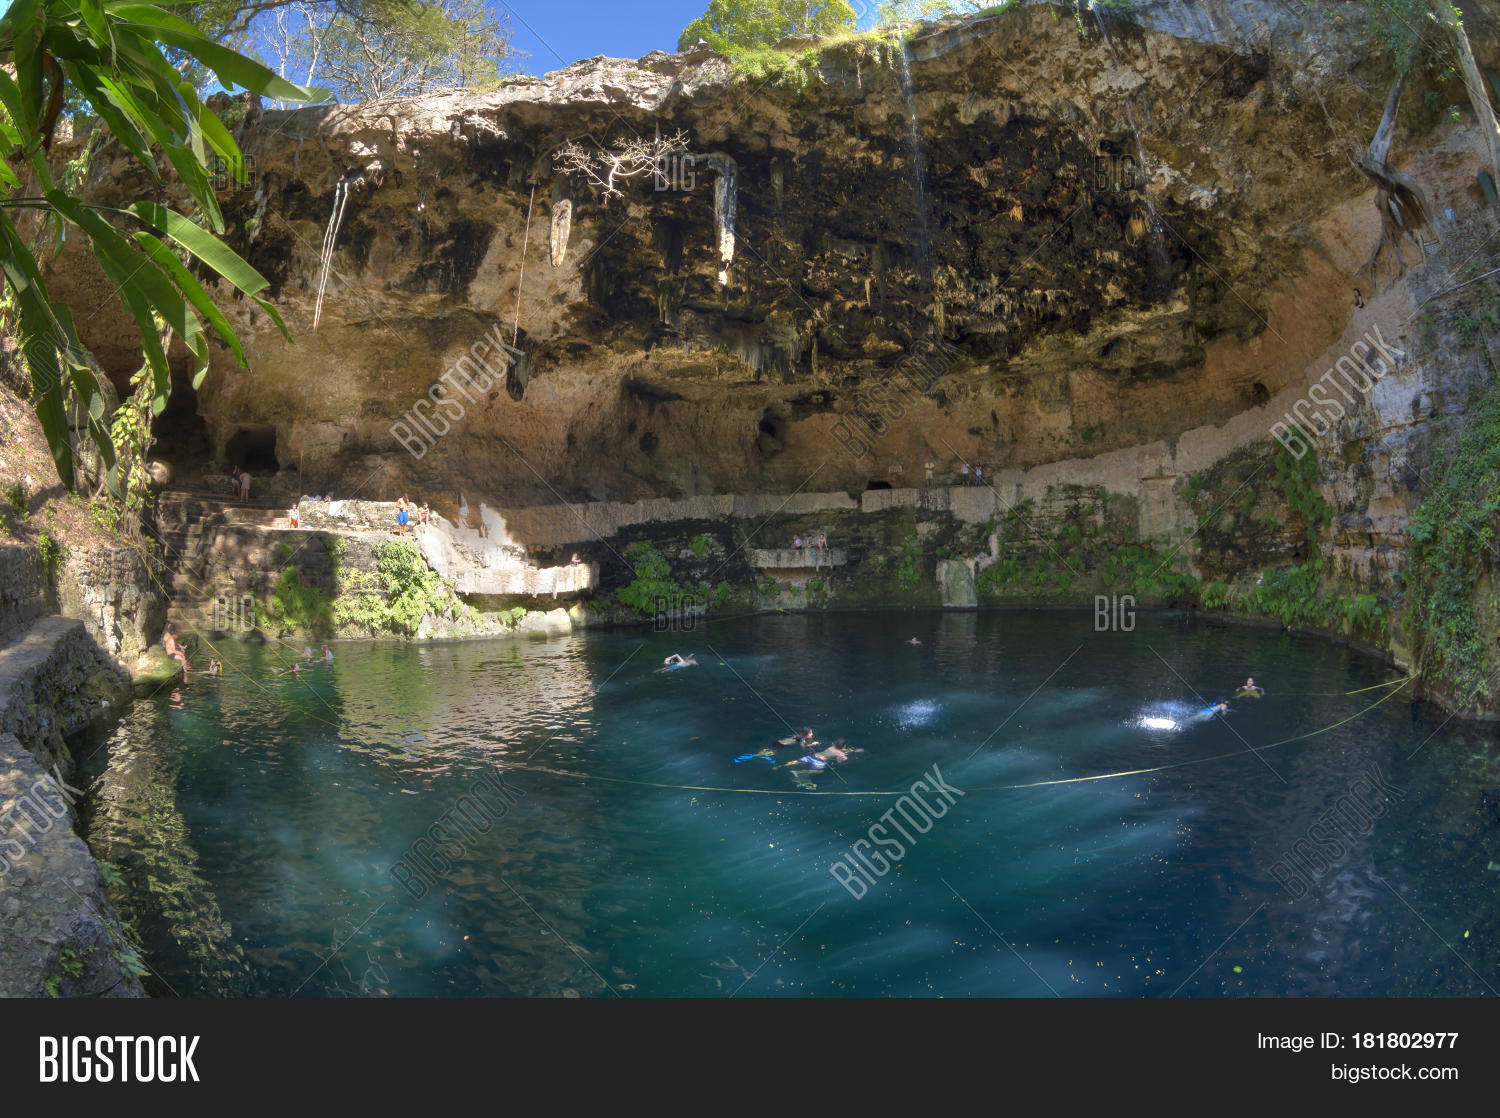 VALLADOLID YUCATAN Image Photo Free Trial